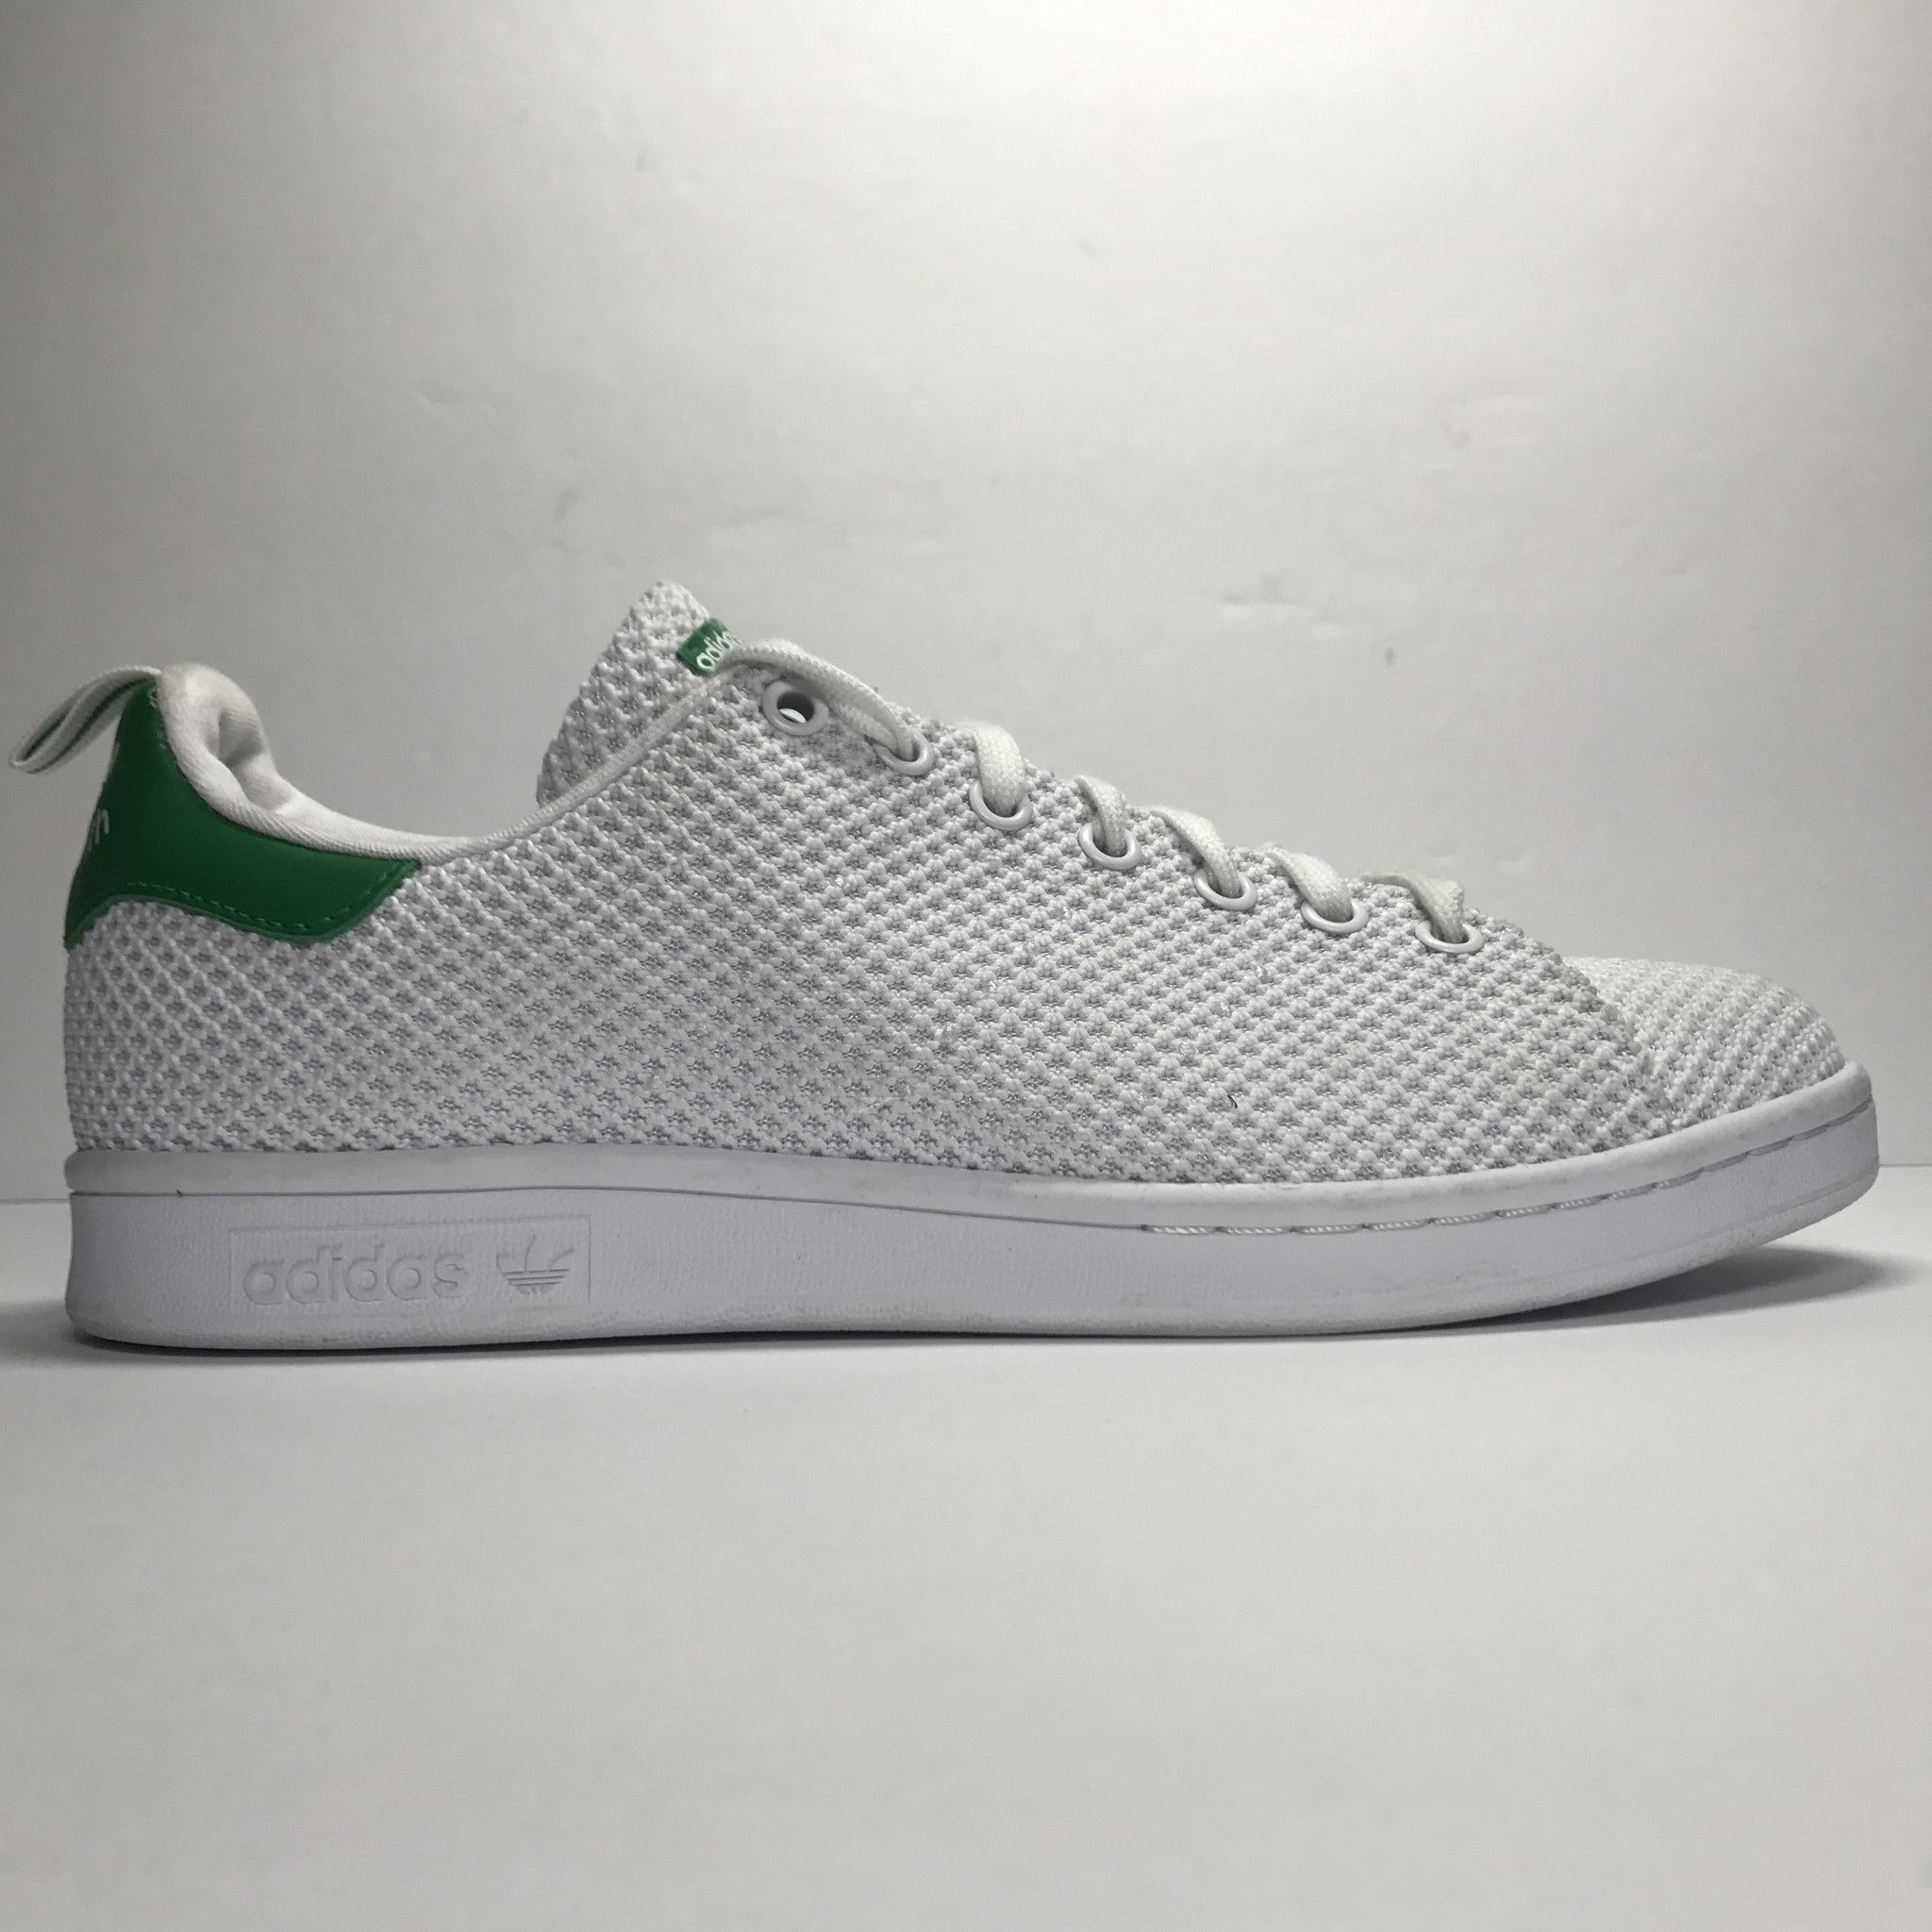 DS Adidas Stan Smith CK White/Green Mesh Size 8.5